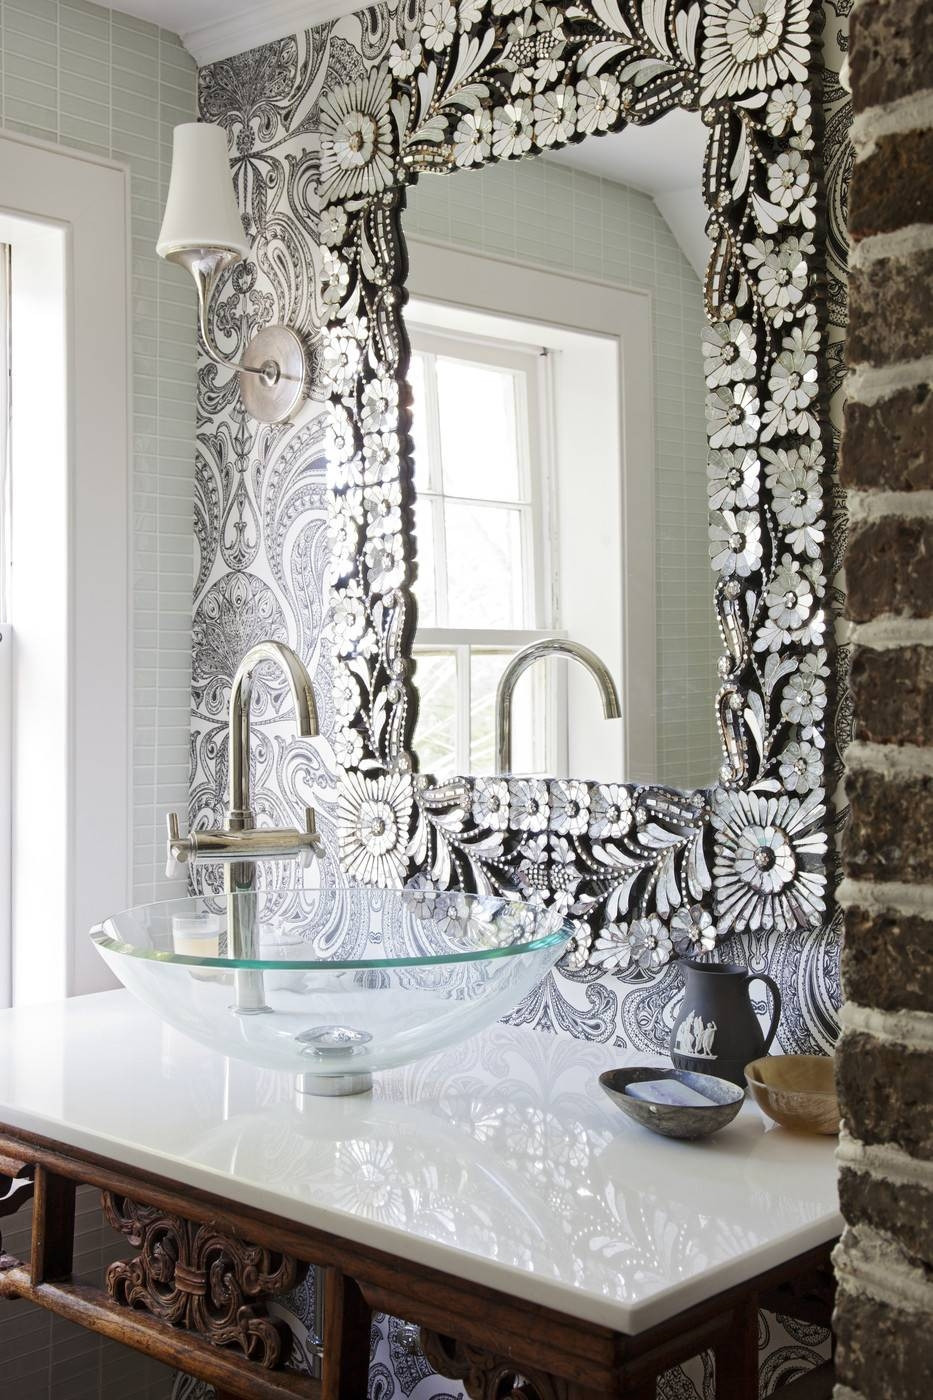 Modern Bathroom Wall Decor Best Of Home and Interior Ideas Silver Bathroom Wall Decor Beautiful